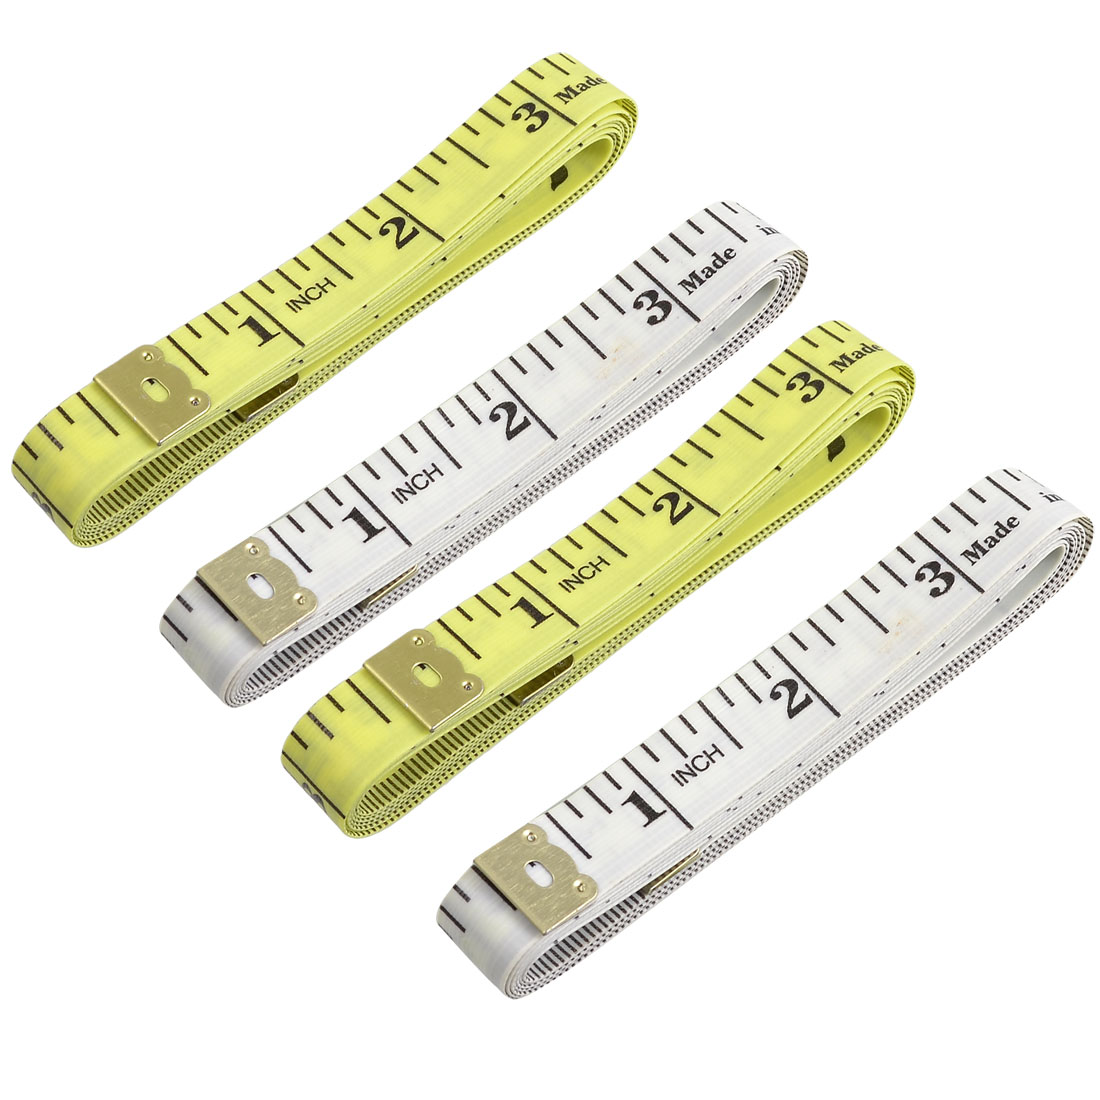 4 Pcs White Yellow Plastic Sewing Tailor Soft Ruler Tape Measure 150cm 60""